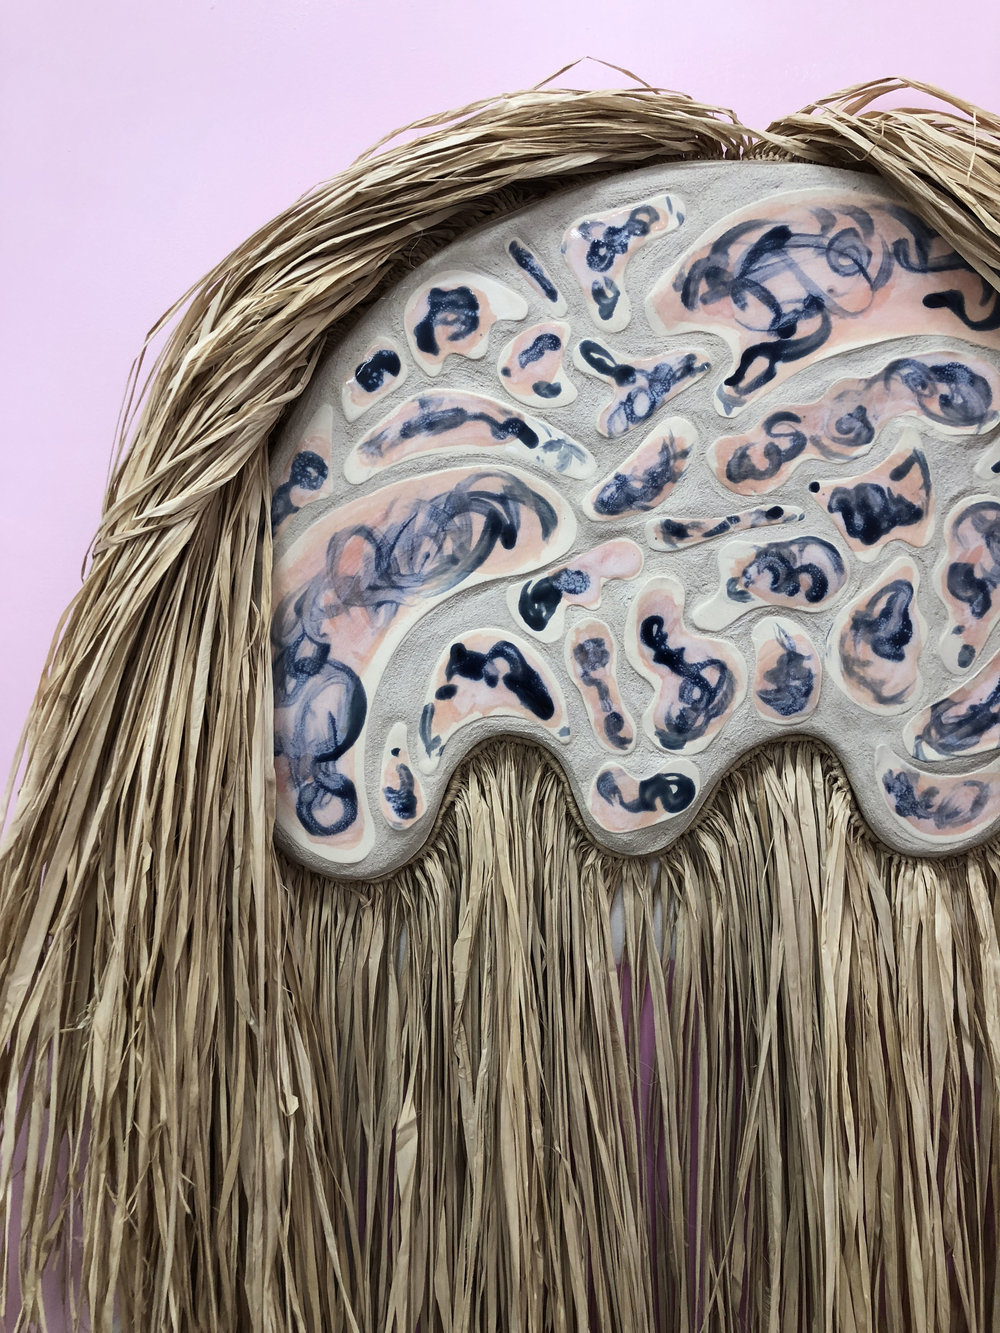 Desert Wildman II (detail)  , 2018, raffia, porcelain, sand on wood panel, 34 x 52 inches